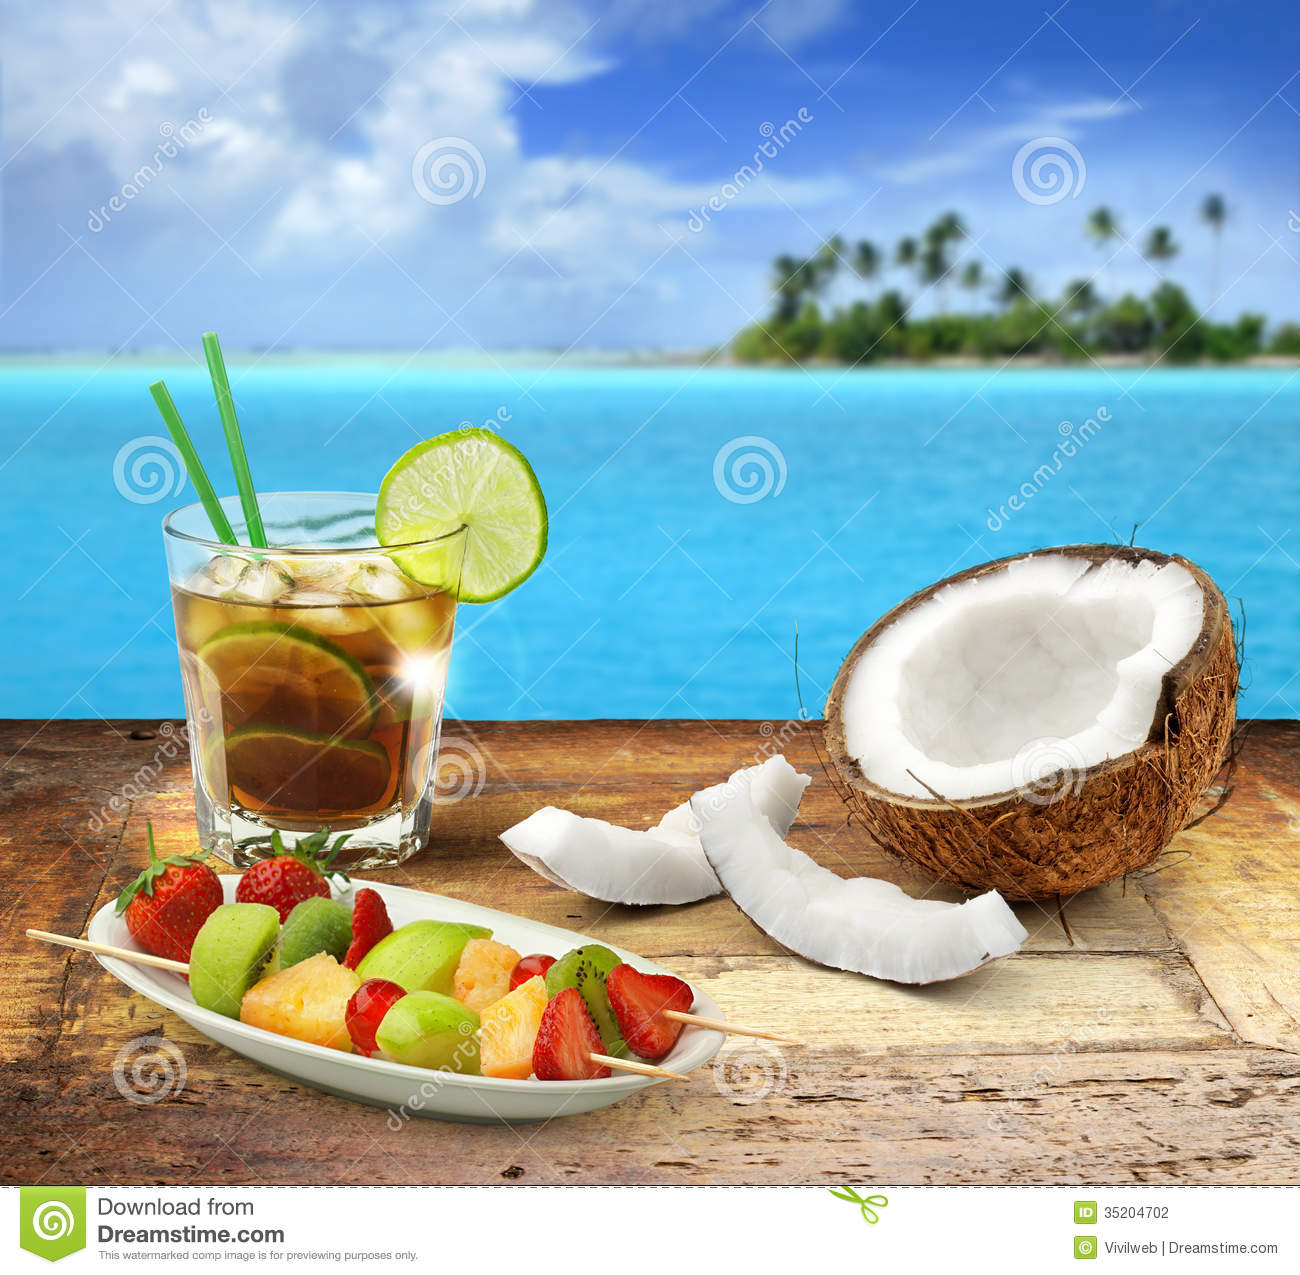 Cuba libre and tropical fruit on a wooden table in a polynesian ...